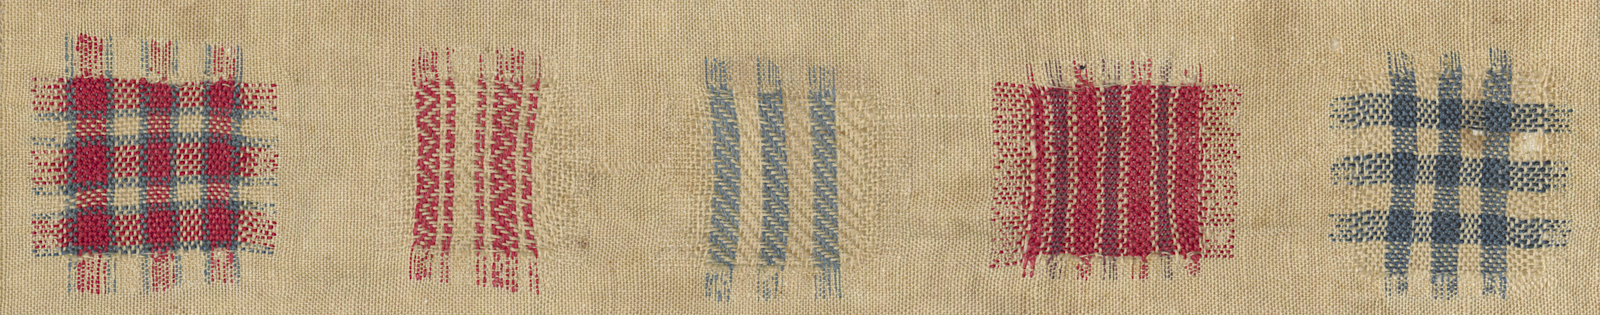 Detail of faux-weaving in the darning sampler, blue, red, and white, stripes and plaid.